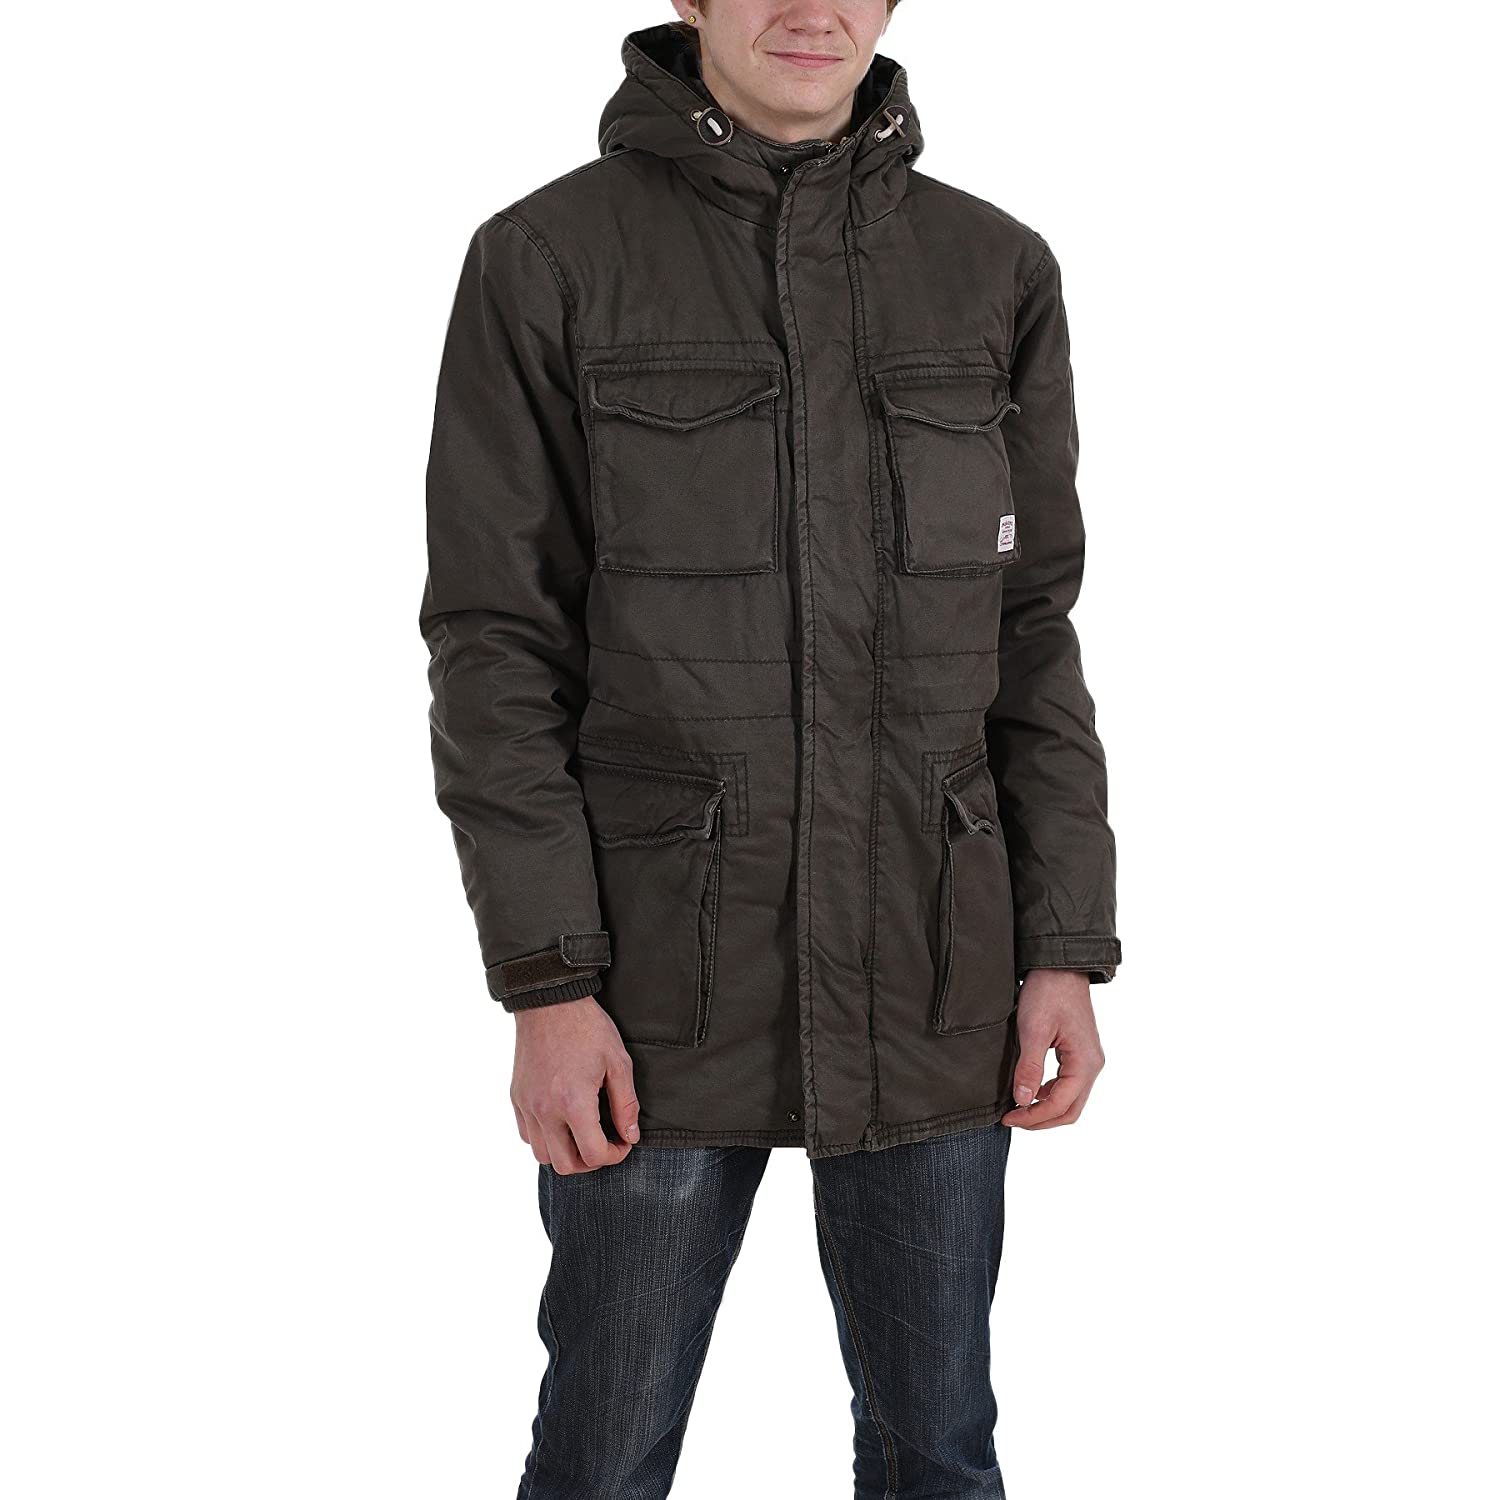 Jack & Jones Winterjacke Value JKT 10-11-12 JJVC DNA turkish coffee/regular fit online kaufen